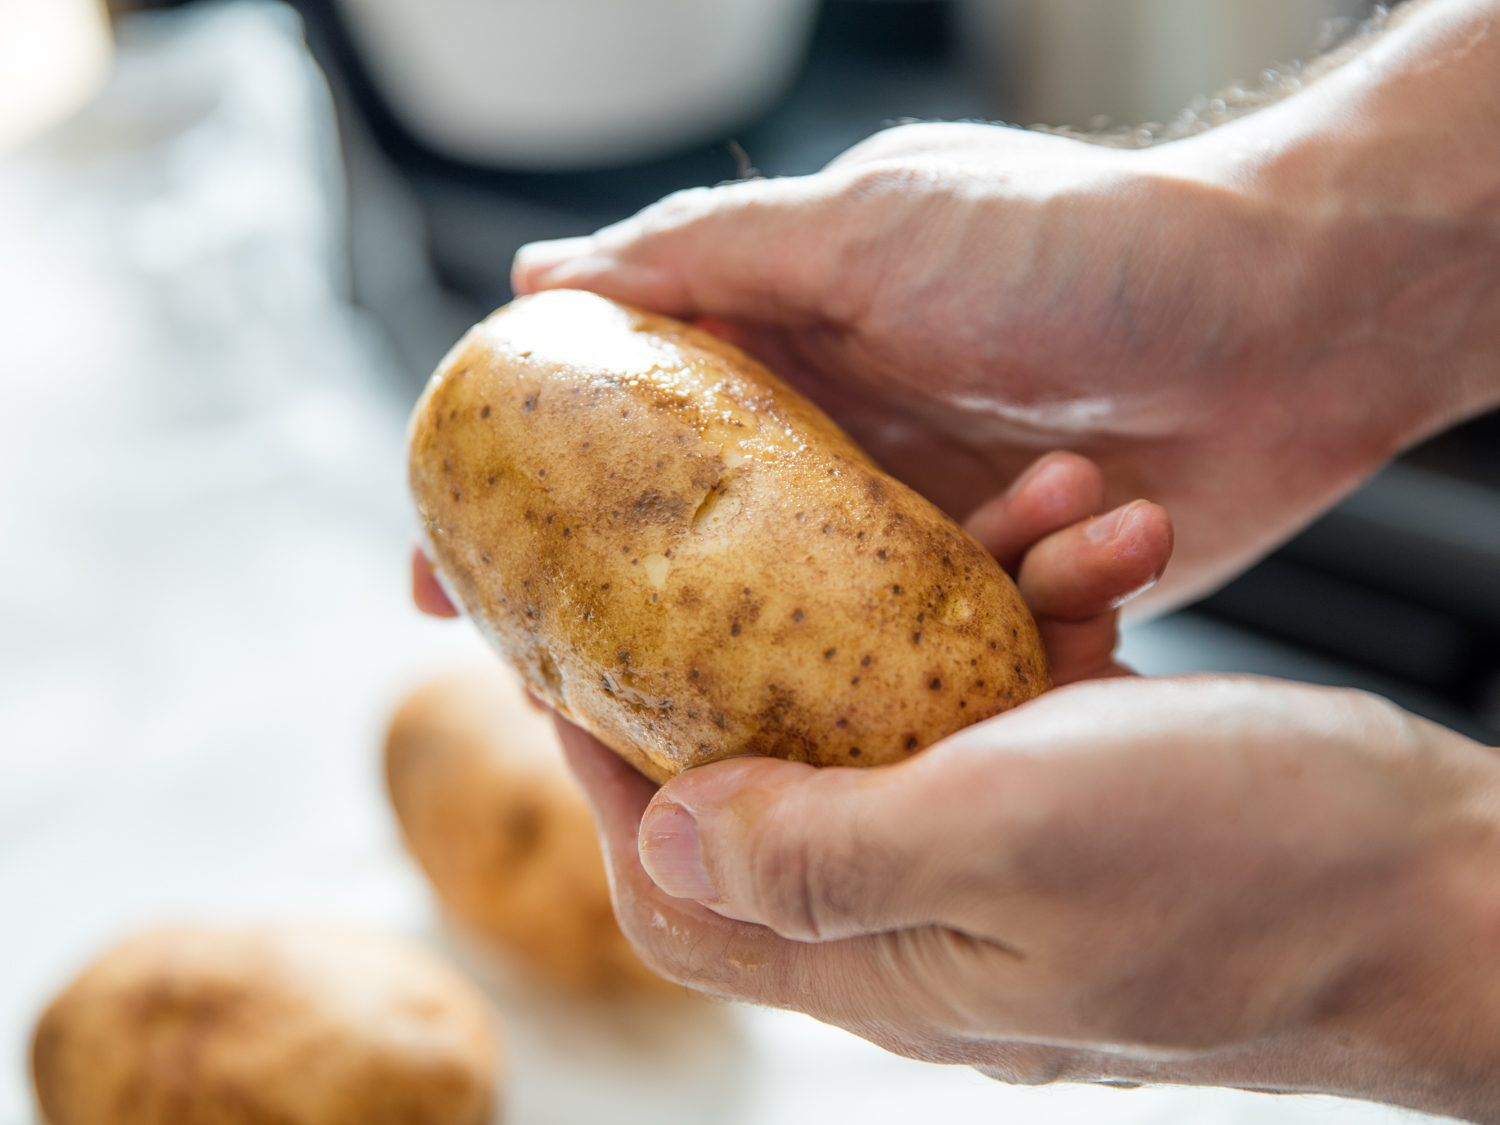 Two hands washing potato in sink.